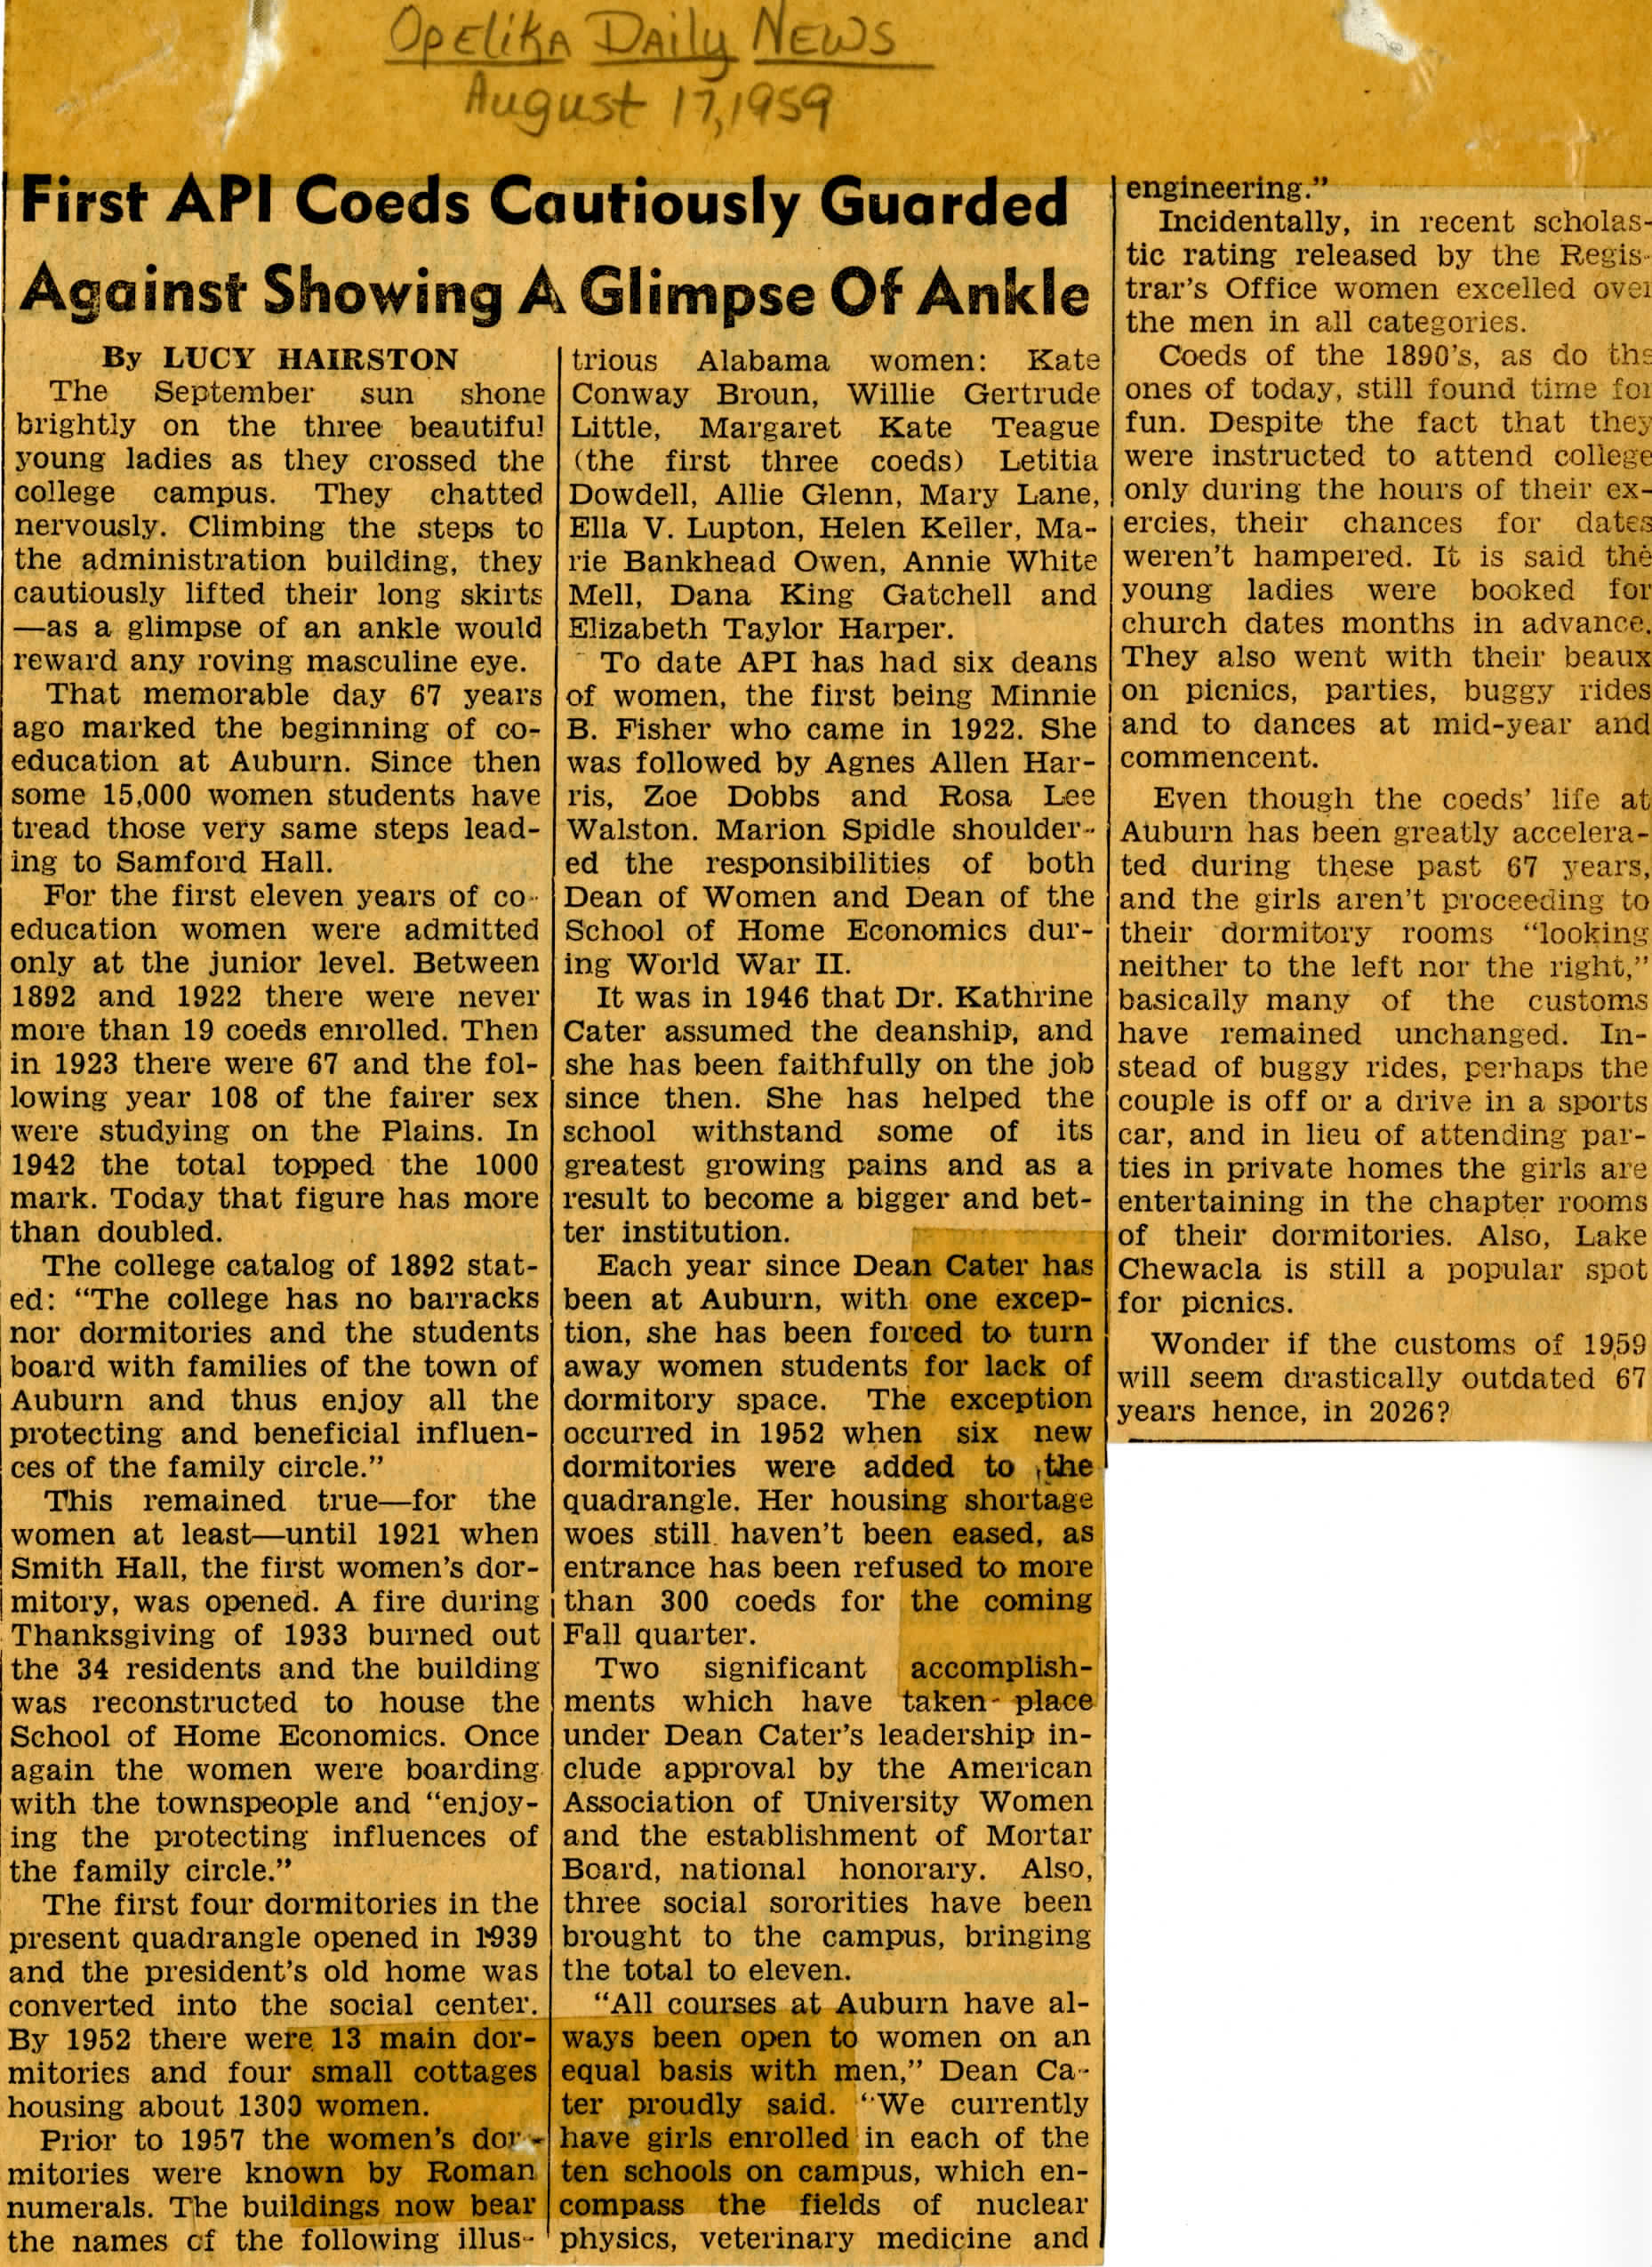 In 1959, the Opelika Daily News reported on gender specific rules imposed on Auburn women.